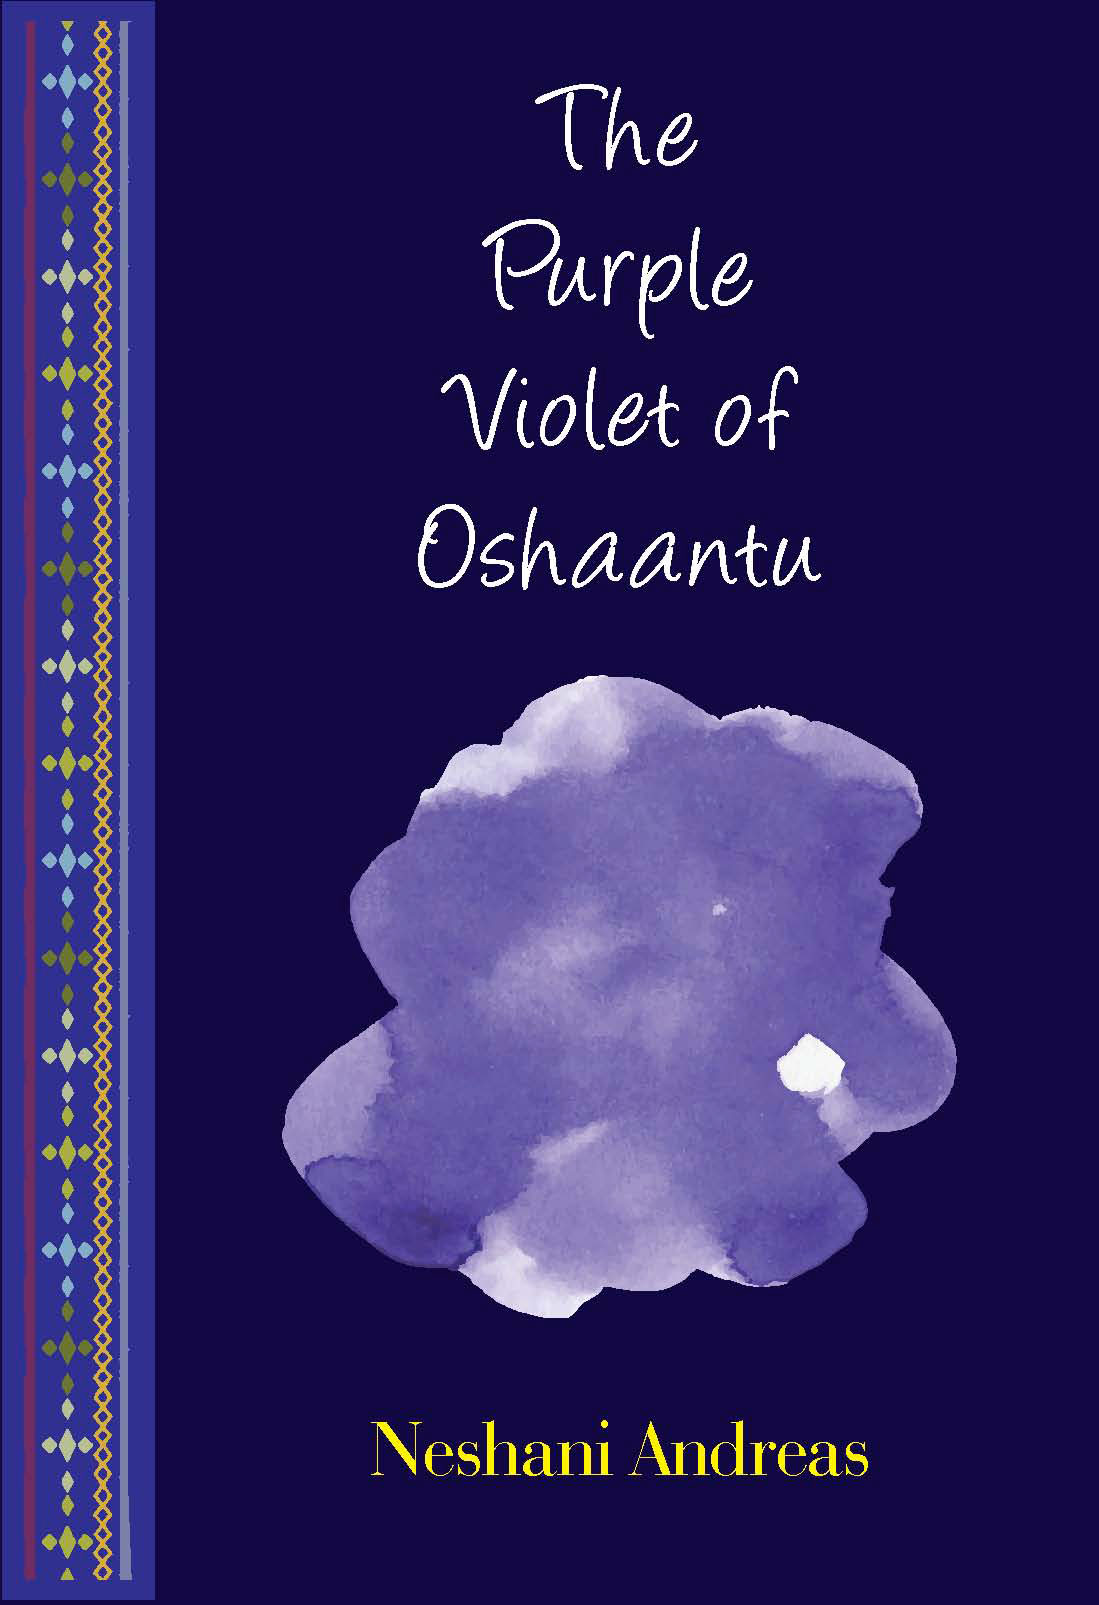 The Purple Violet of Oshaantu:  by Neshani  Andreas